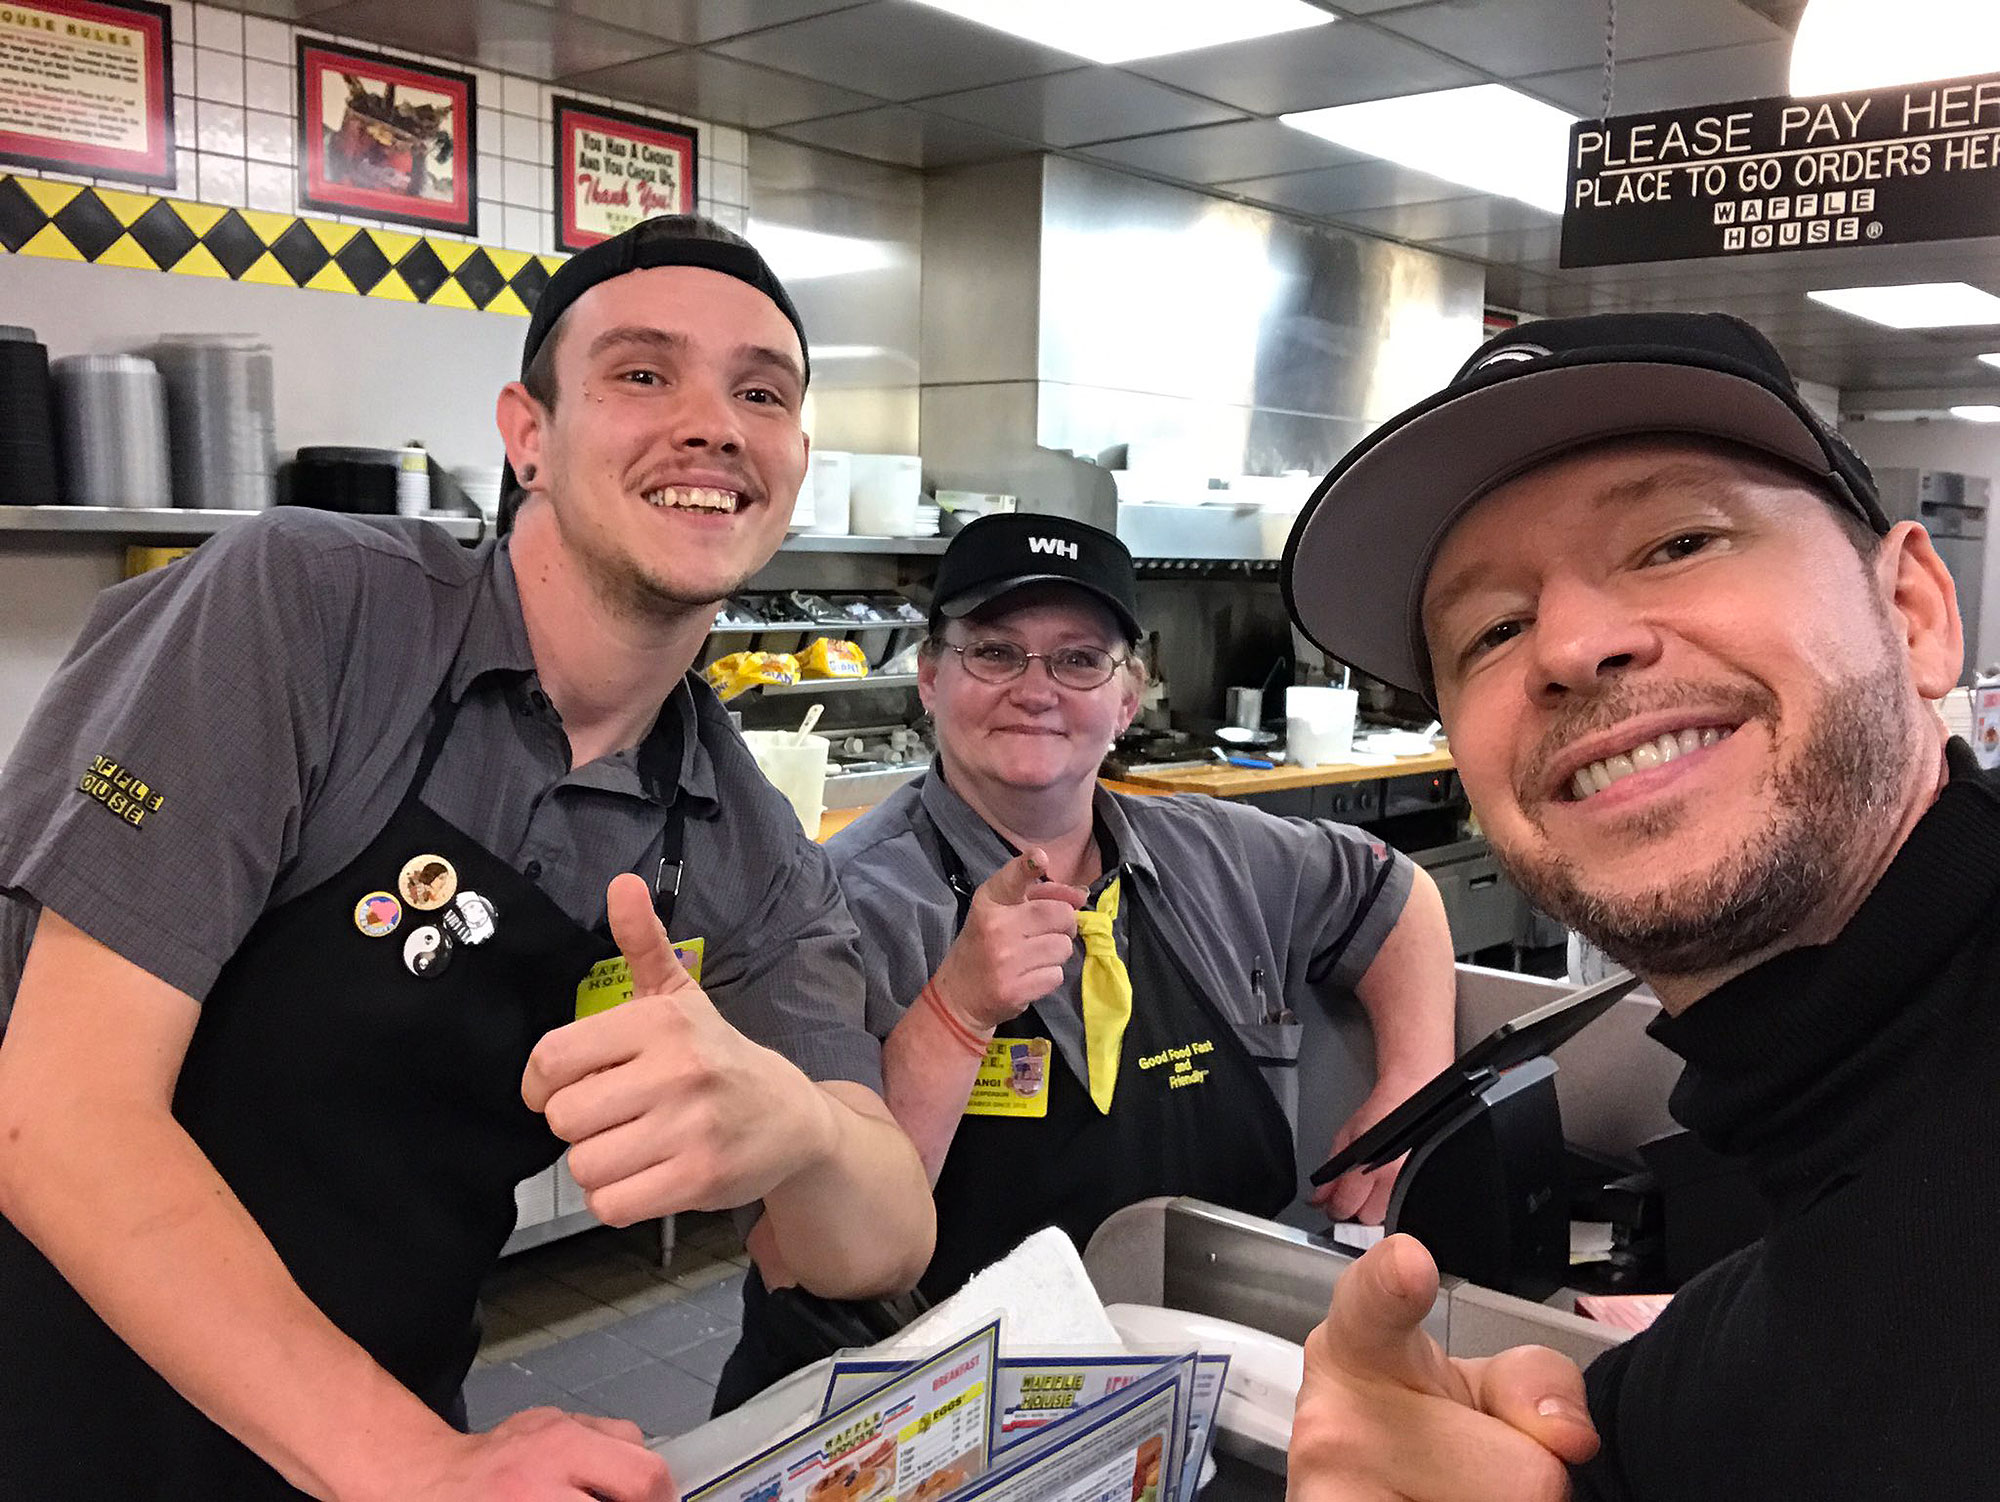 EC: Donnie Wahlberg Leaves a $500 Tip for the Overnight Staff at Waffle House